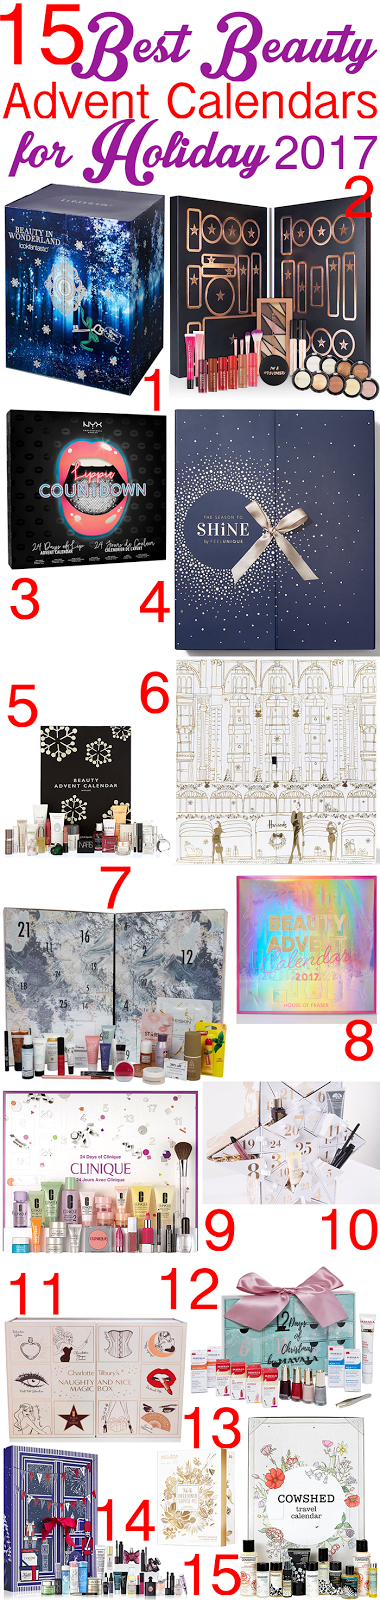 15 best Beauty Advent Calendars for Holiday 2017 that ship worldwide: prices, contents, spoilers, and more.